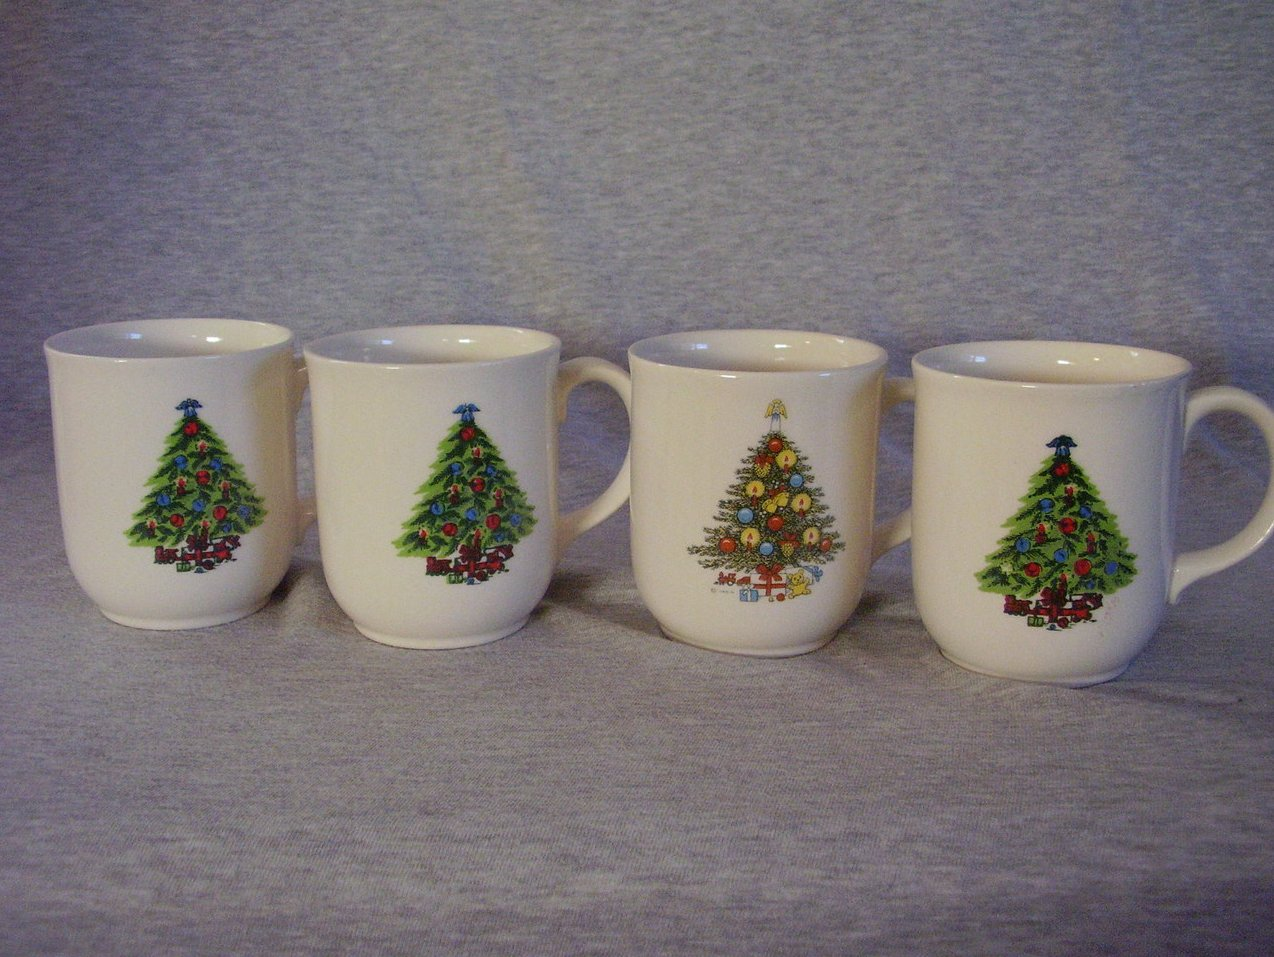 Mt. Clemens Pottery Christmas Tree Mugs Mixed Set of 4 Vintage